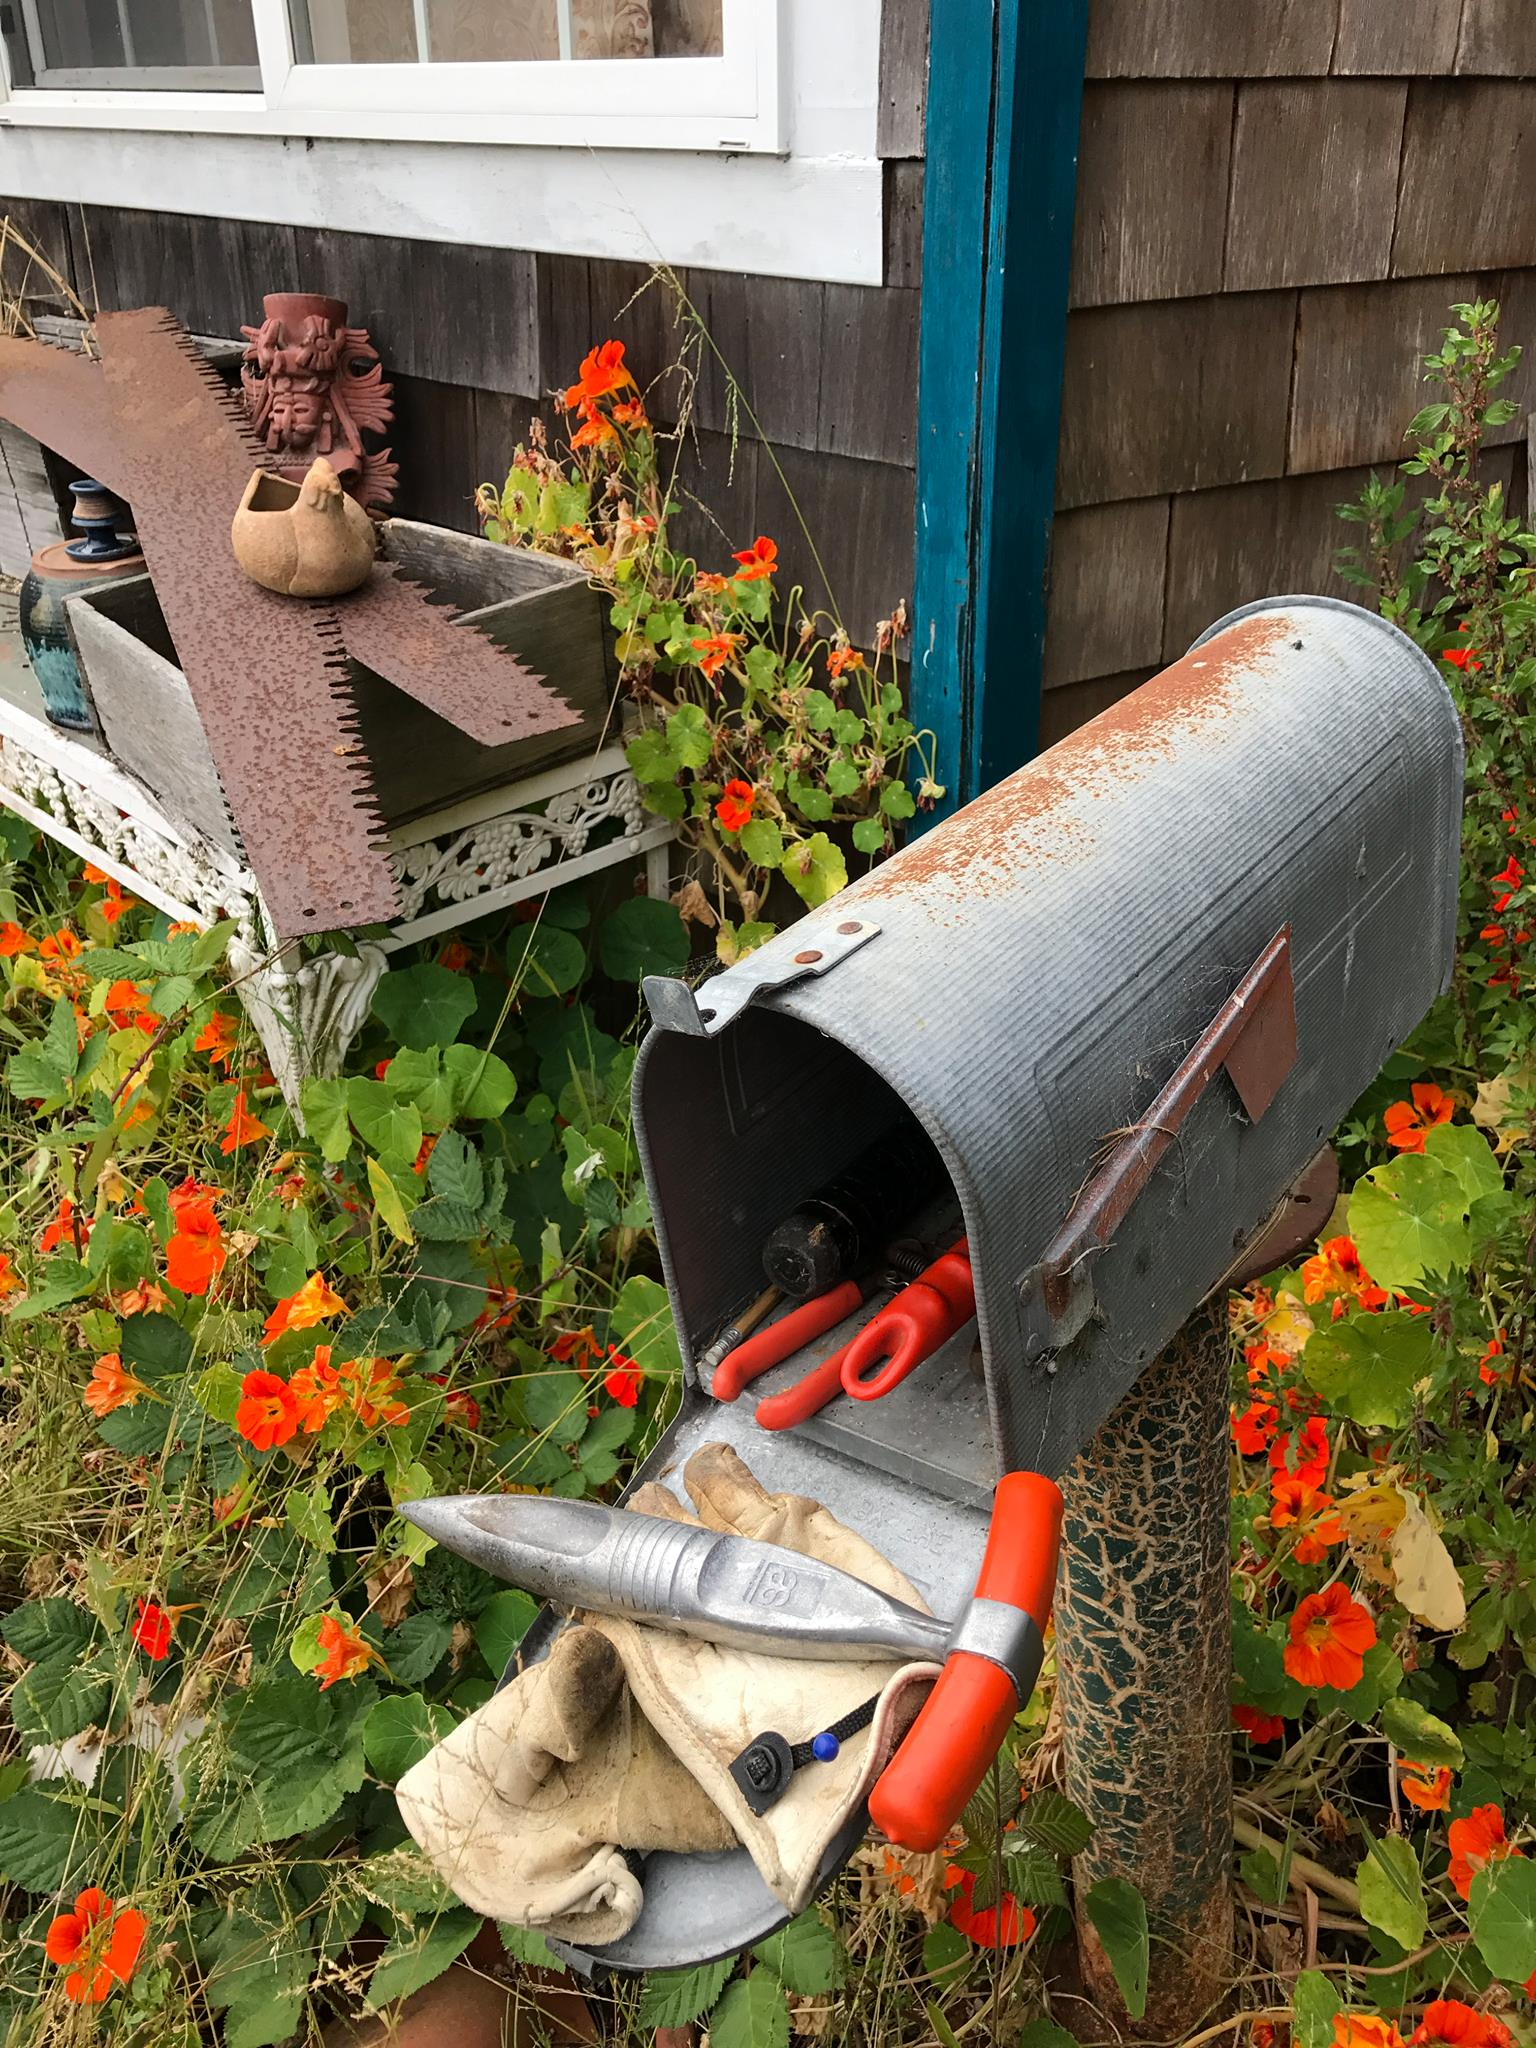 Tips of the Week: Big Wrench/Small Bolt, Organizing Screws, Mailbox Garden Tool Stash